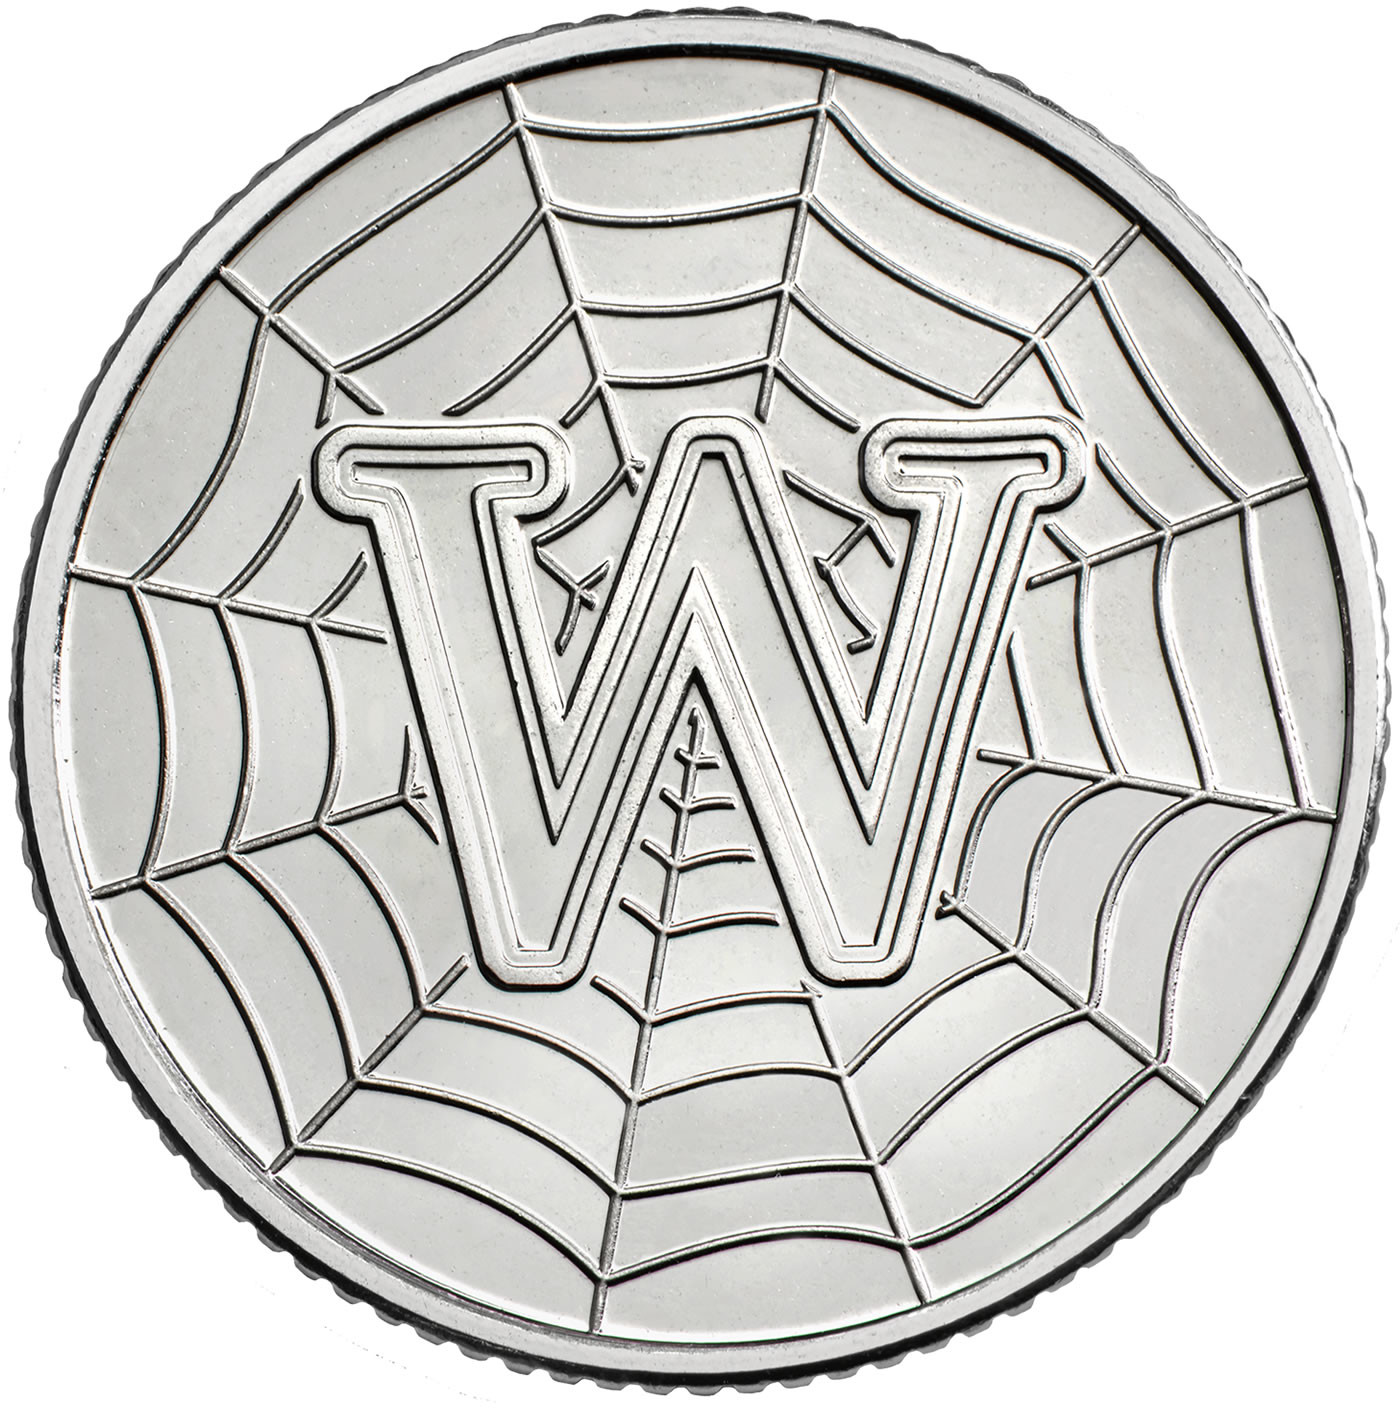 Ten Pence 2019 W - World Wide Web: Photo W - World Wide Web 2019 UK 10p Coin | The Royal Mint